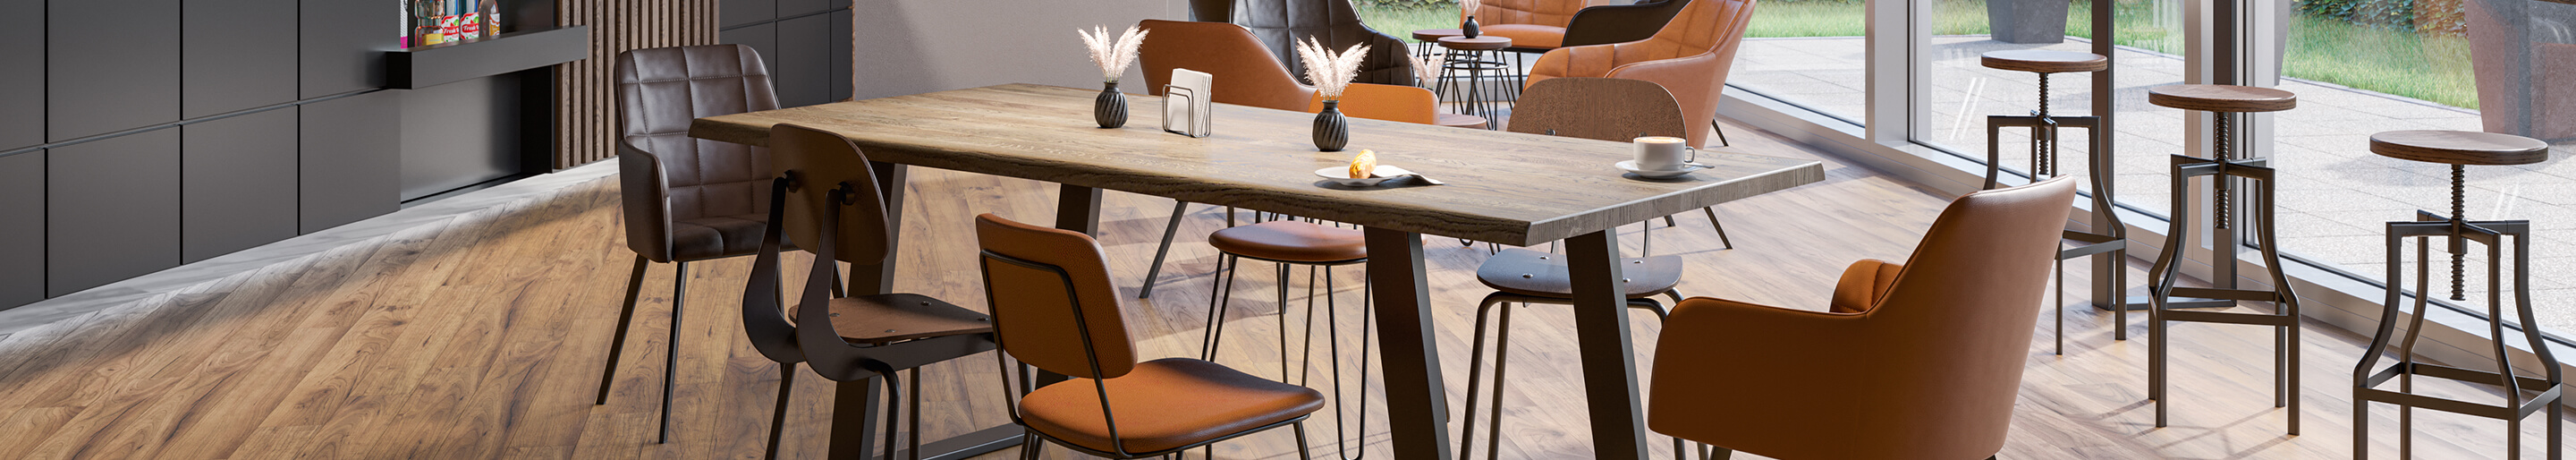 Indoor Tables for your restaurant or hotel